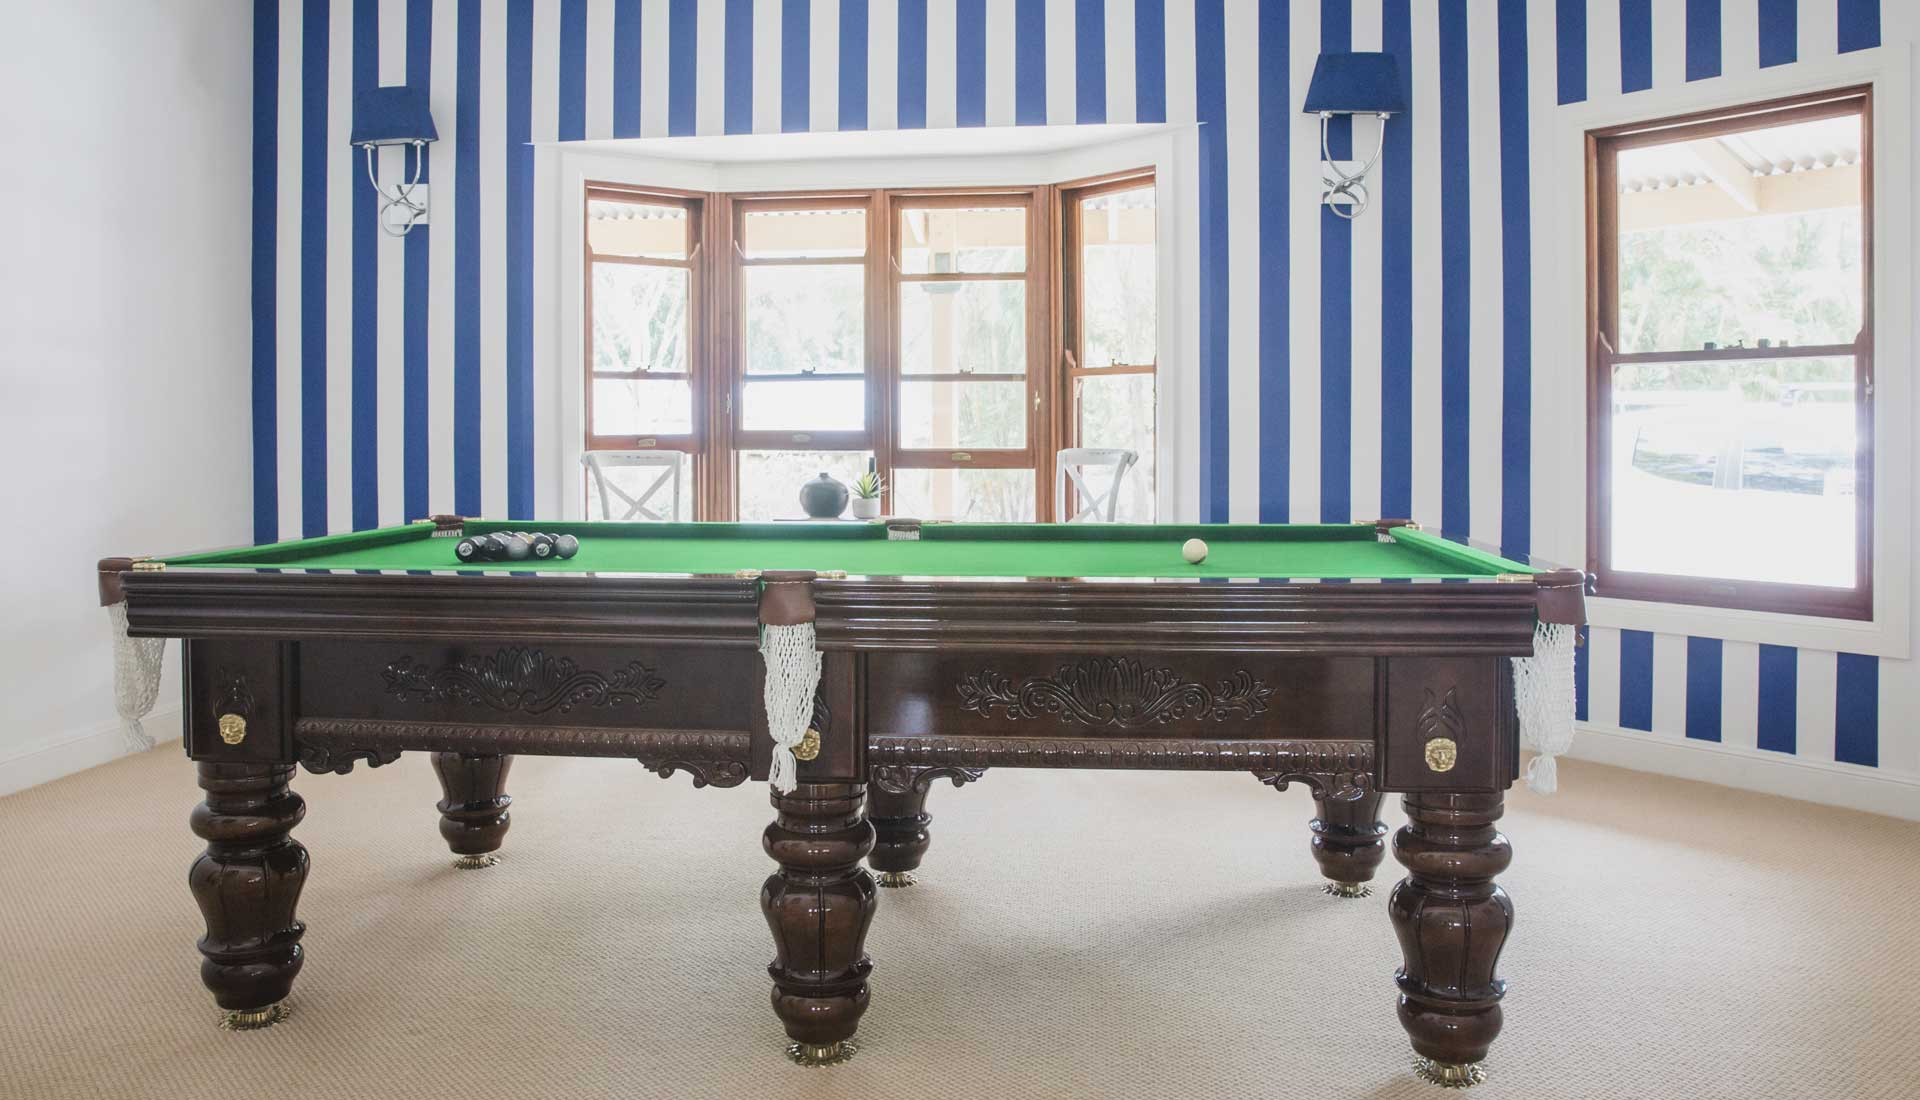 pool room blue and white wall stripes design by danni